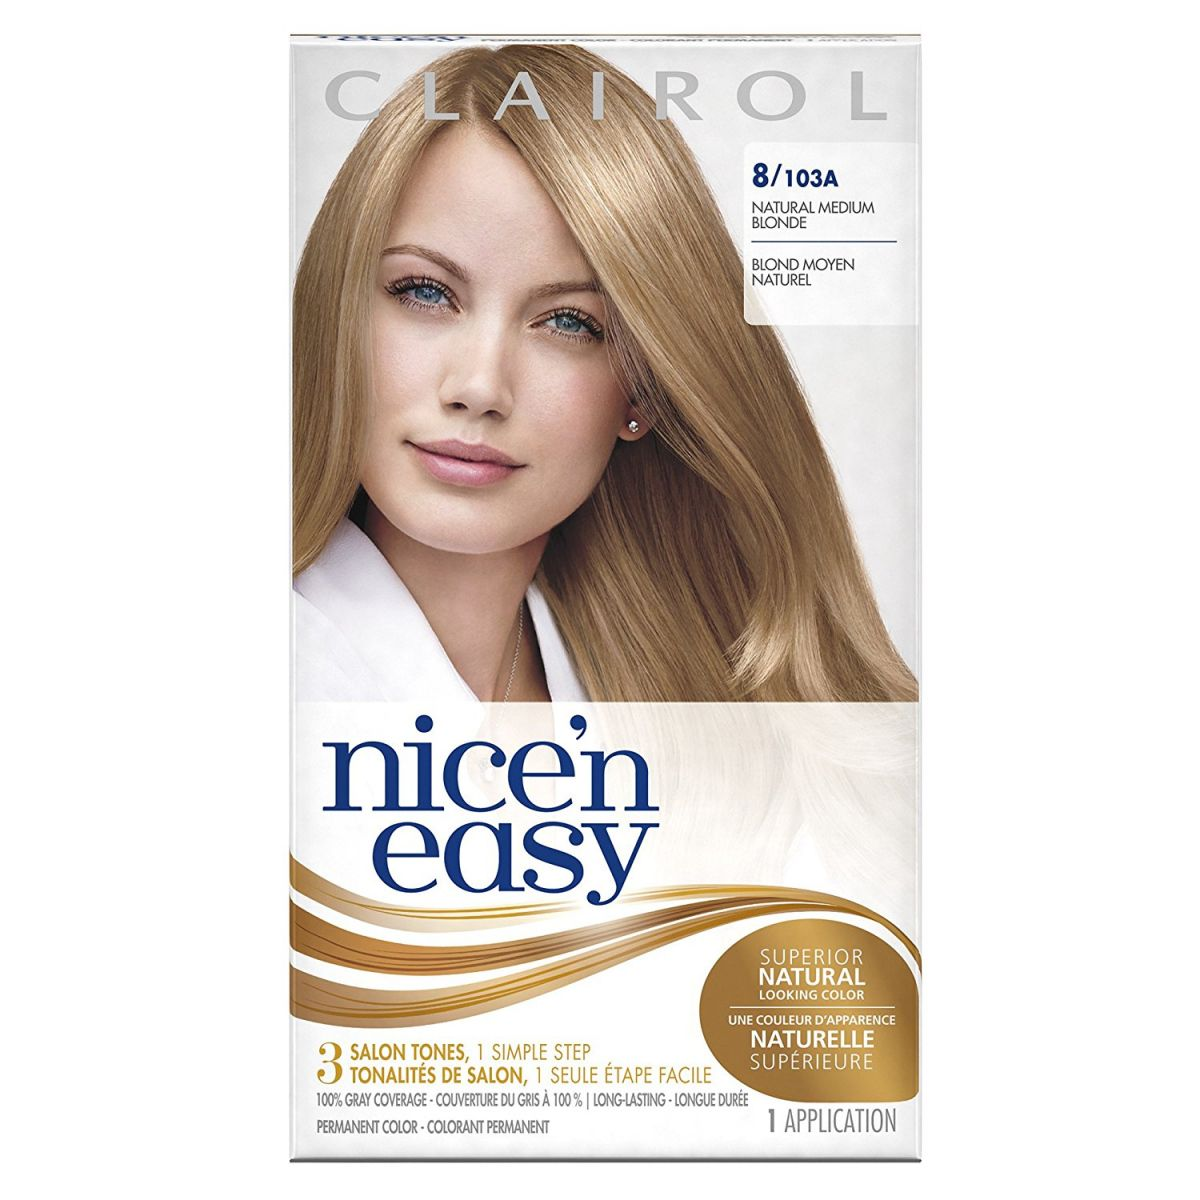 Medium Natural Blonde Hair Color Best Way To Color Your Hair At